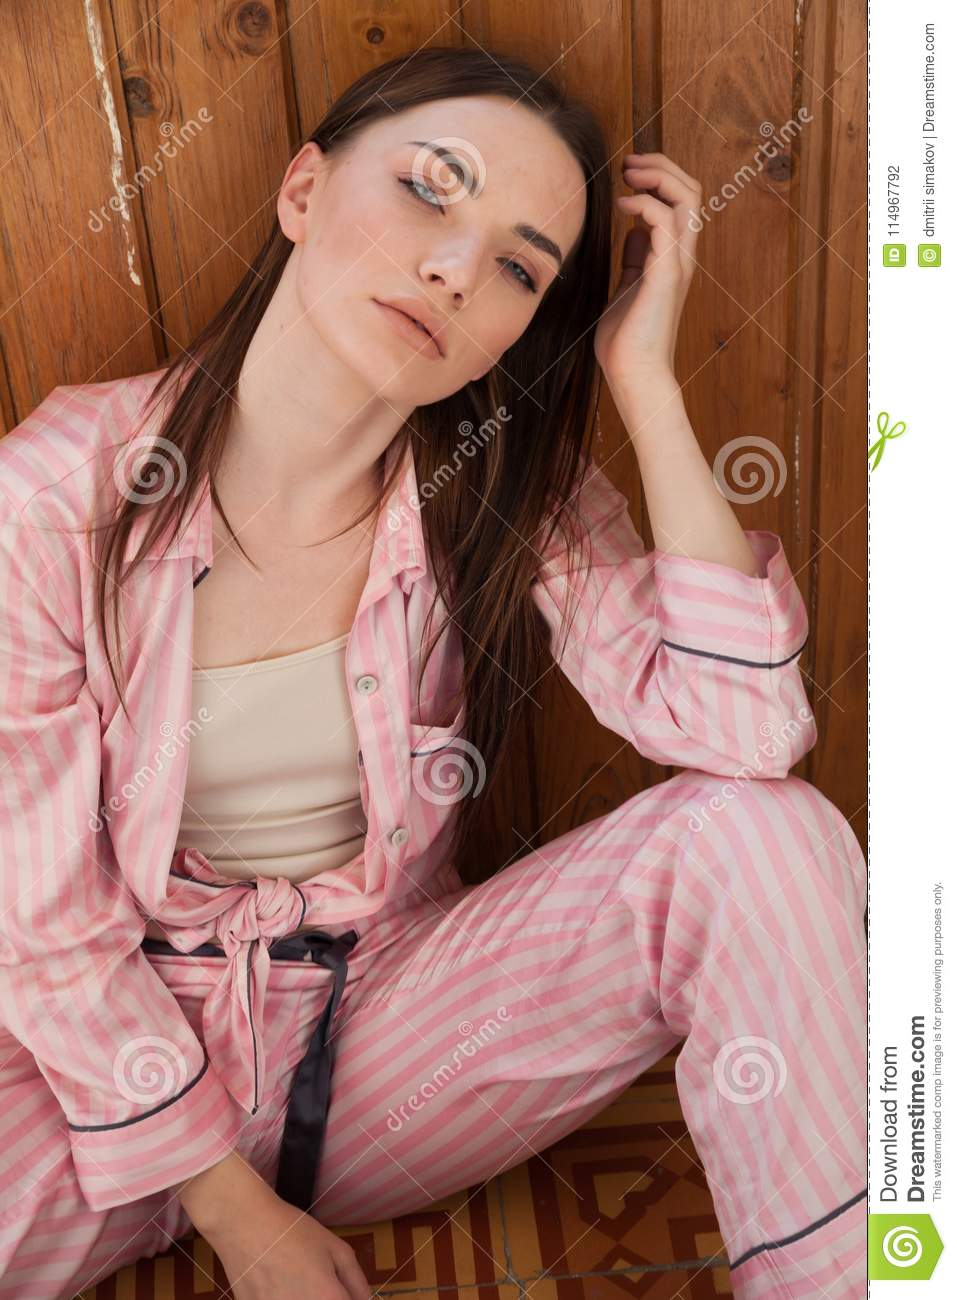 21f4bb36d1d7 Beautiful Woman In Pink Pajamas In The Bedroom Stock Photo - Image ...